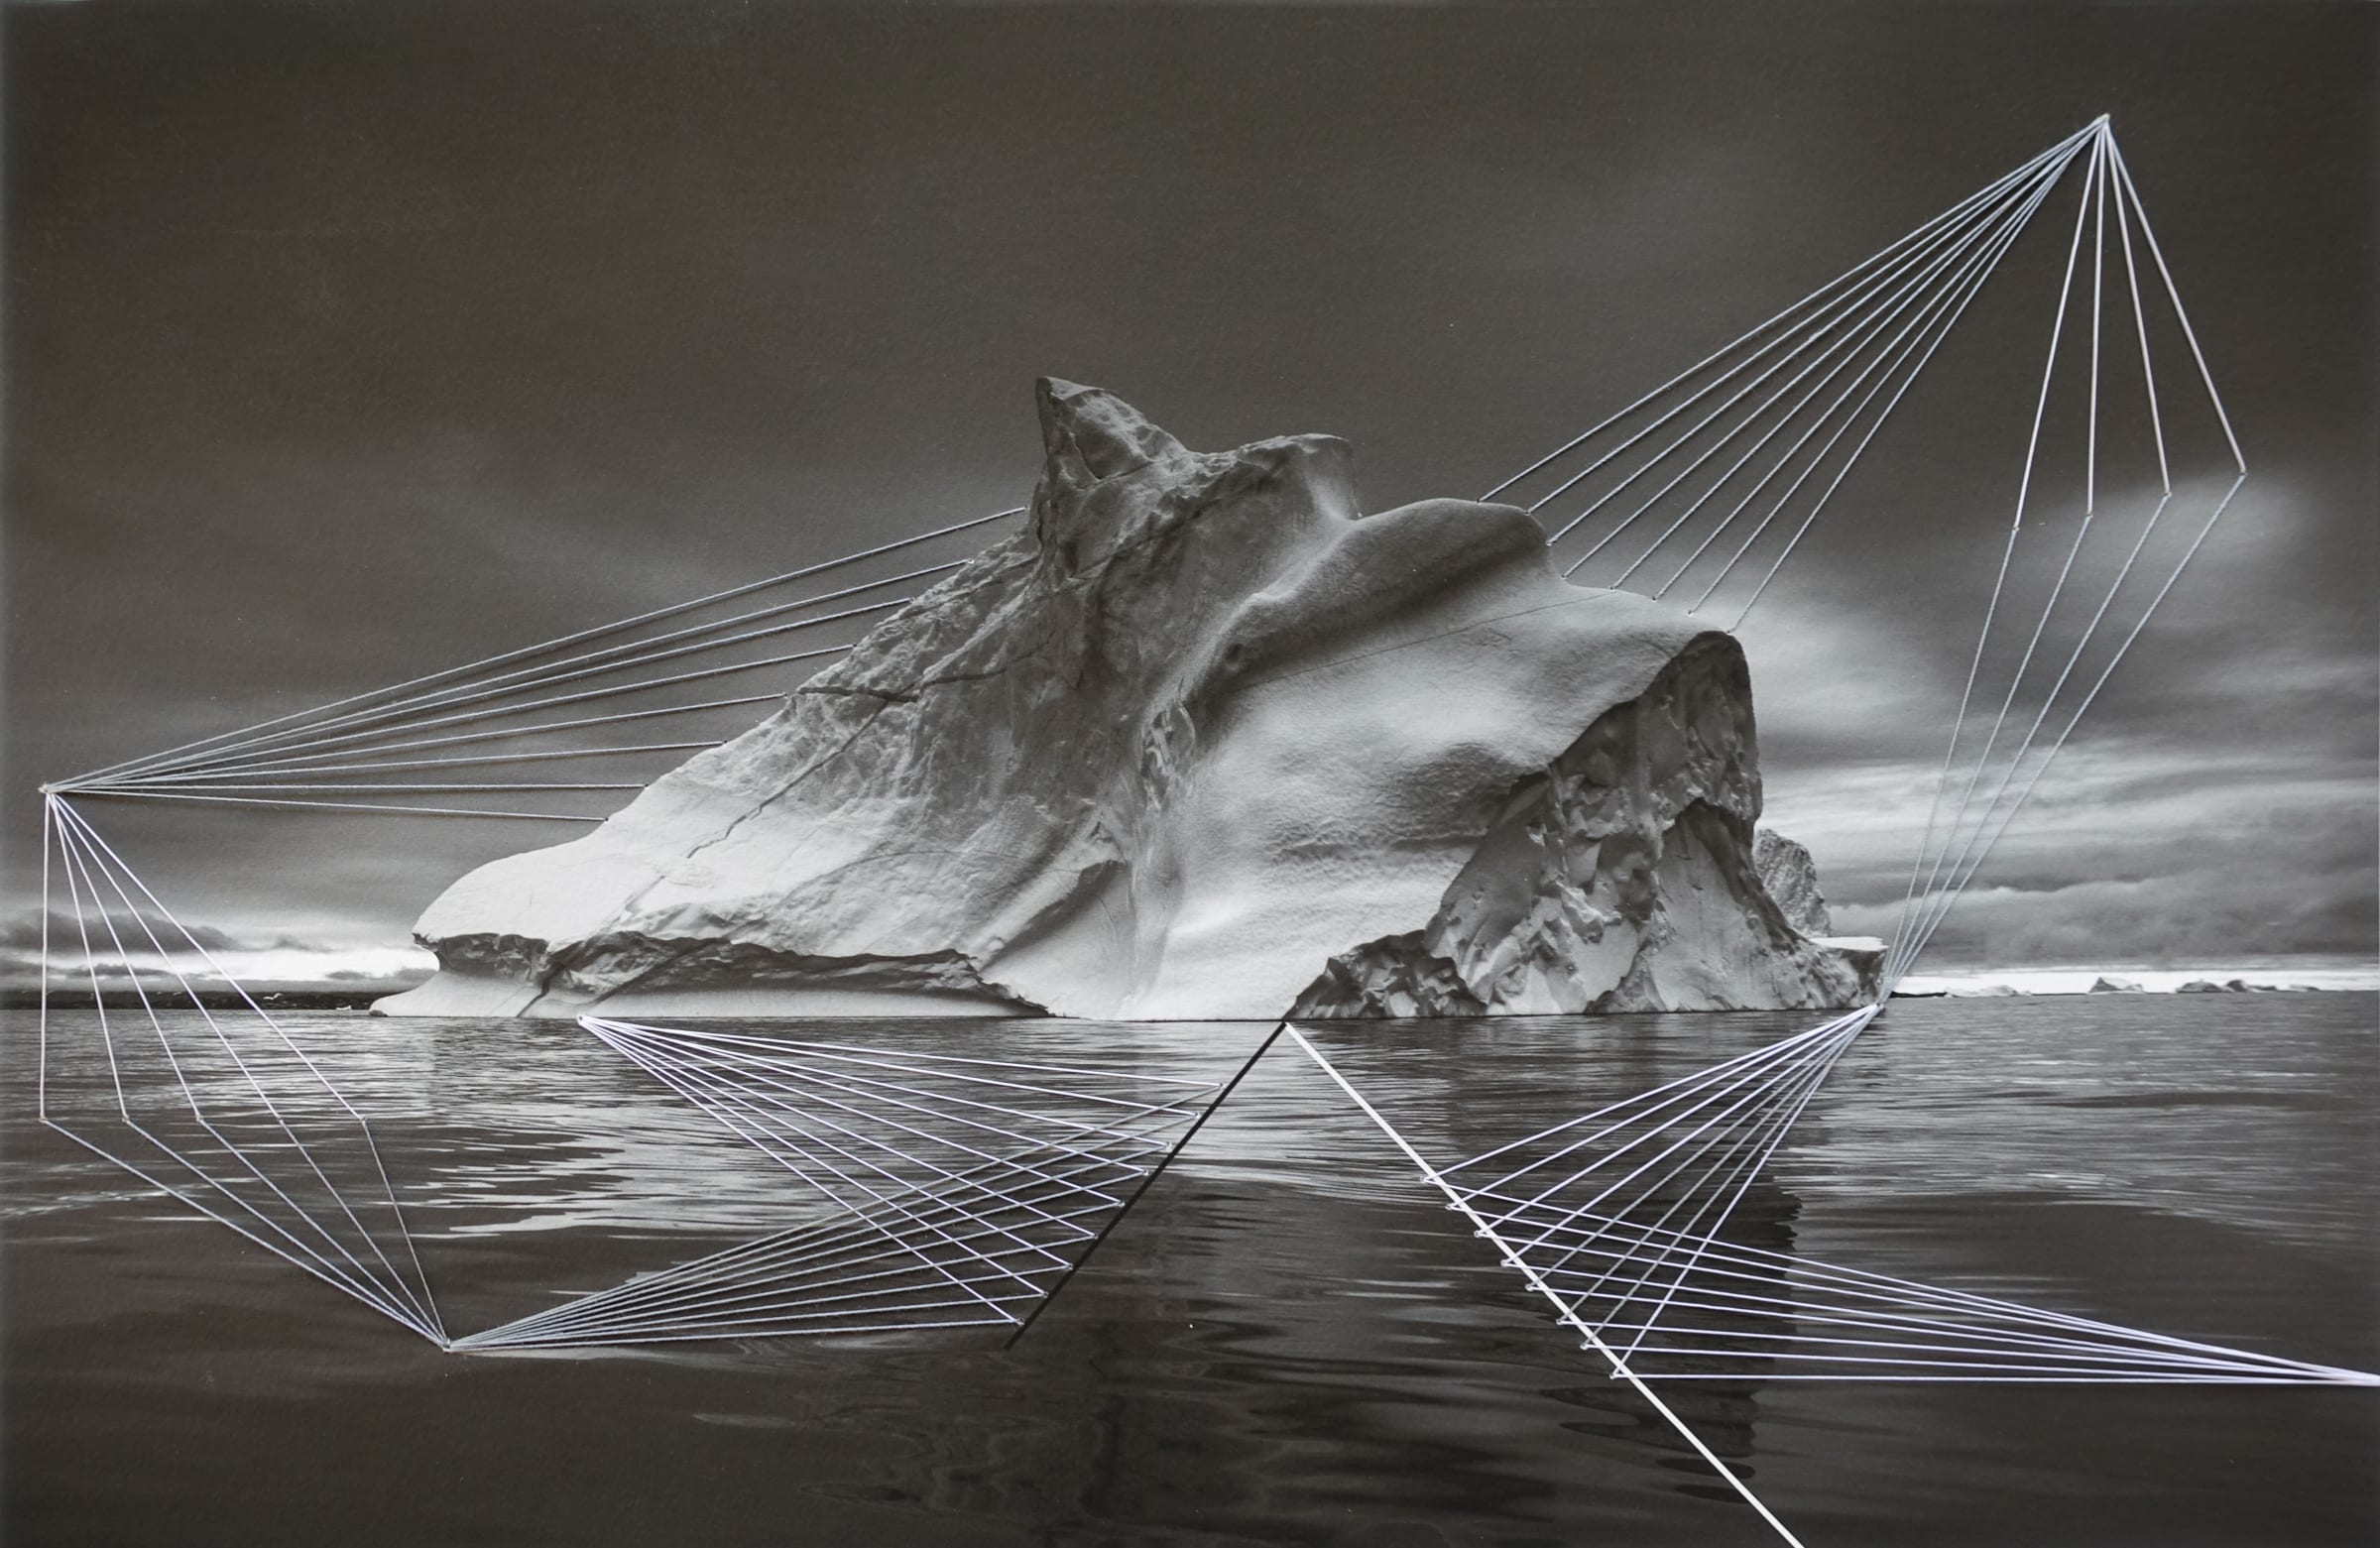 """<span class=""""link fancybox-details-link""""><a href=""""/artists/52-adriene-hughes/works/894-adriene-hughes-threaded-iceberg-bw-no.-3-2019/"""">View Detail Page</a></span><div class=""""artist""""><strong>Adriene Hughes</strong></div> <div class=""""title""""><em>Threaded Iceberg BW No. 3</em>, 2019</div> <div class=""""medium"""">Archival Pigment Print on Cotton Rag with Cotton Quilting Thread<br /> Print only<br /> Unique</div> <div class=""""dimensions"""">20.3 x 30.5 cm<br /> 8 x 12 in</div><div class=""""copyright_line"""">Copyright Adriene Hughes<br></div>"""